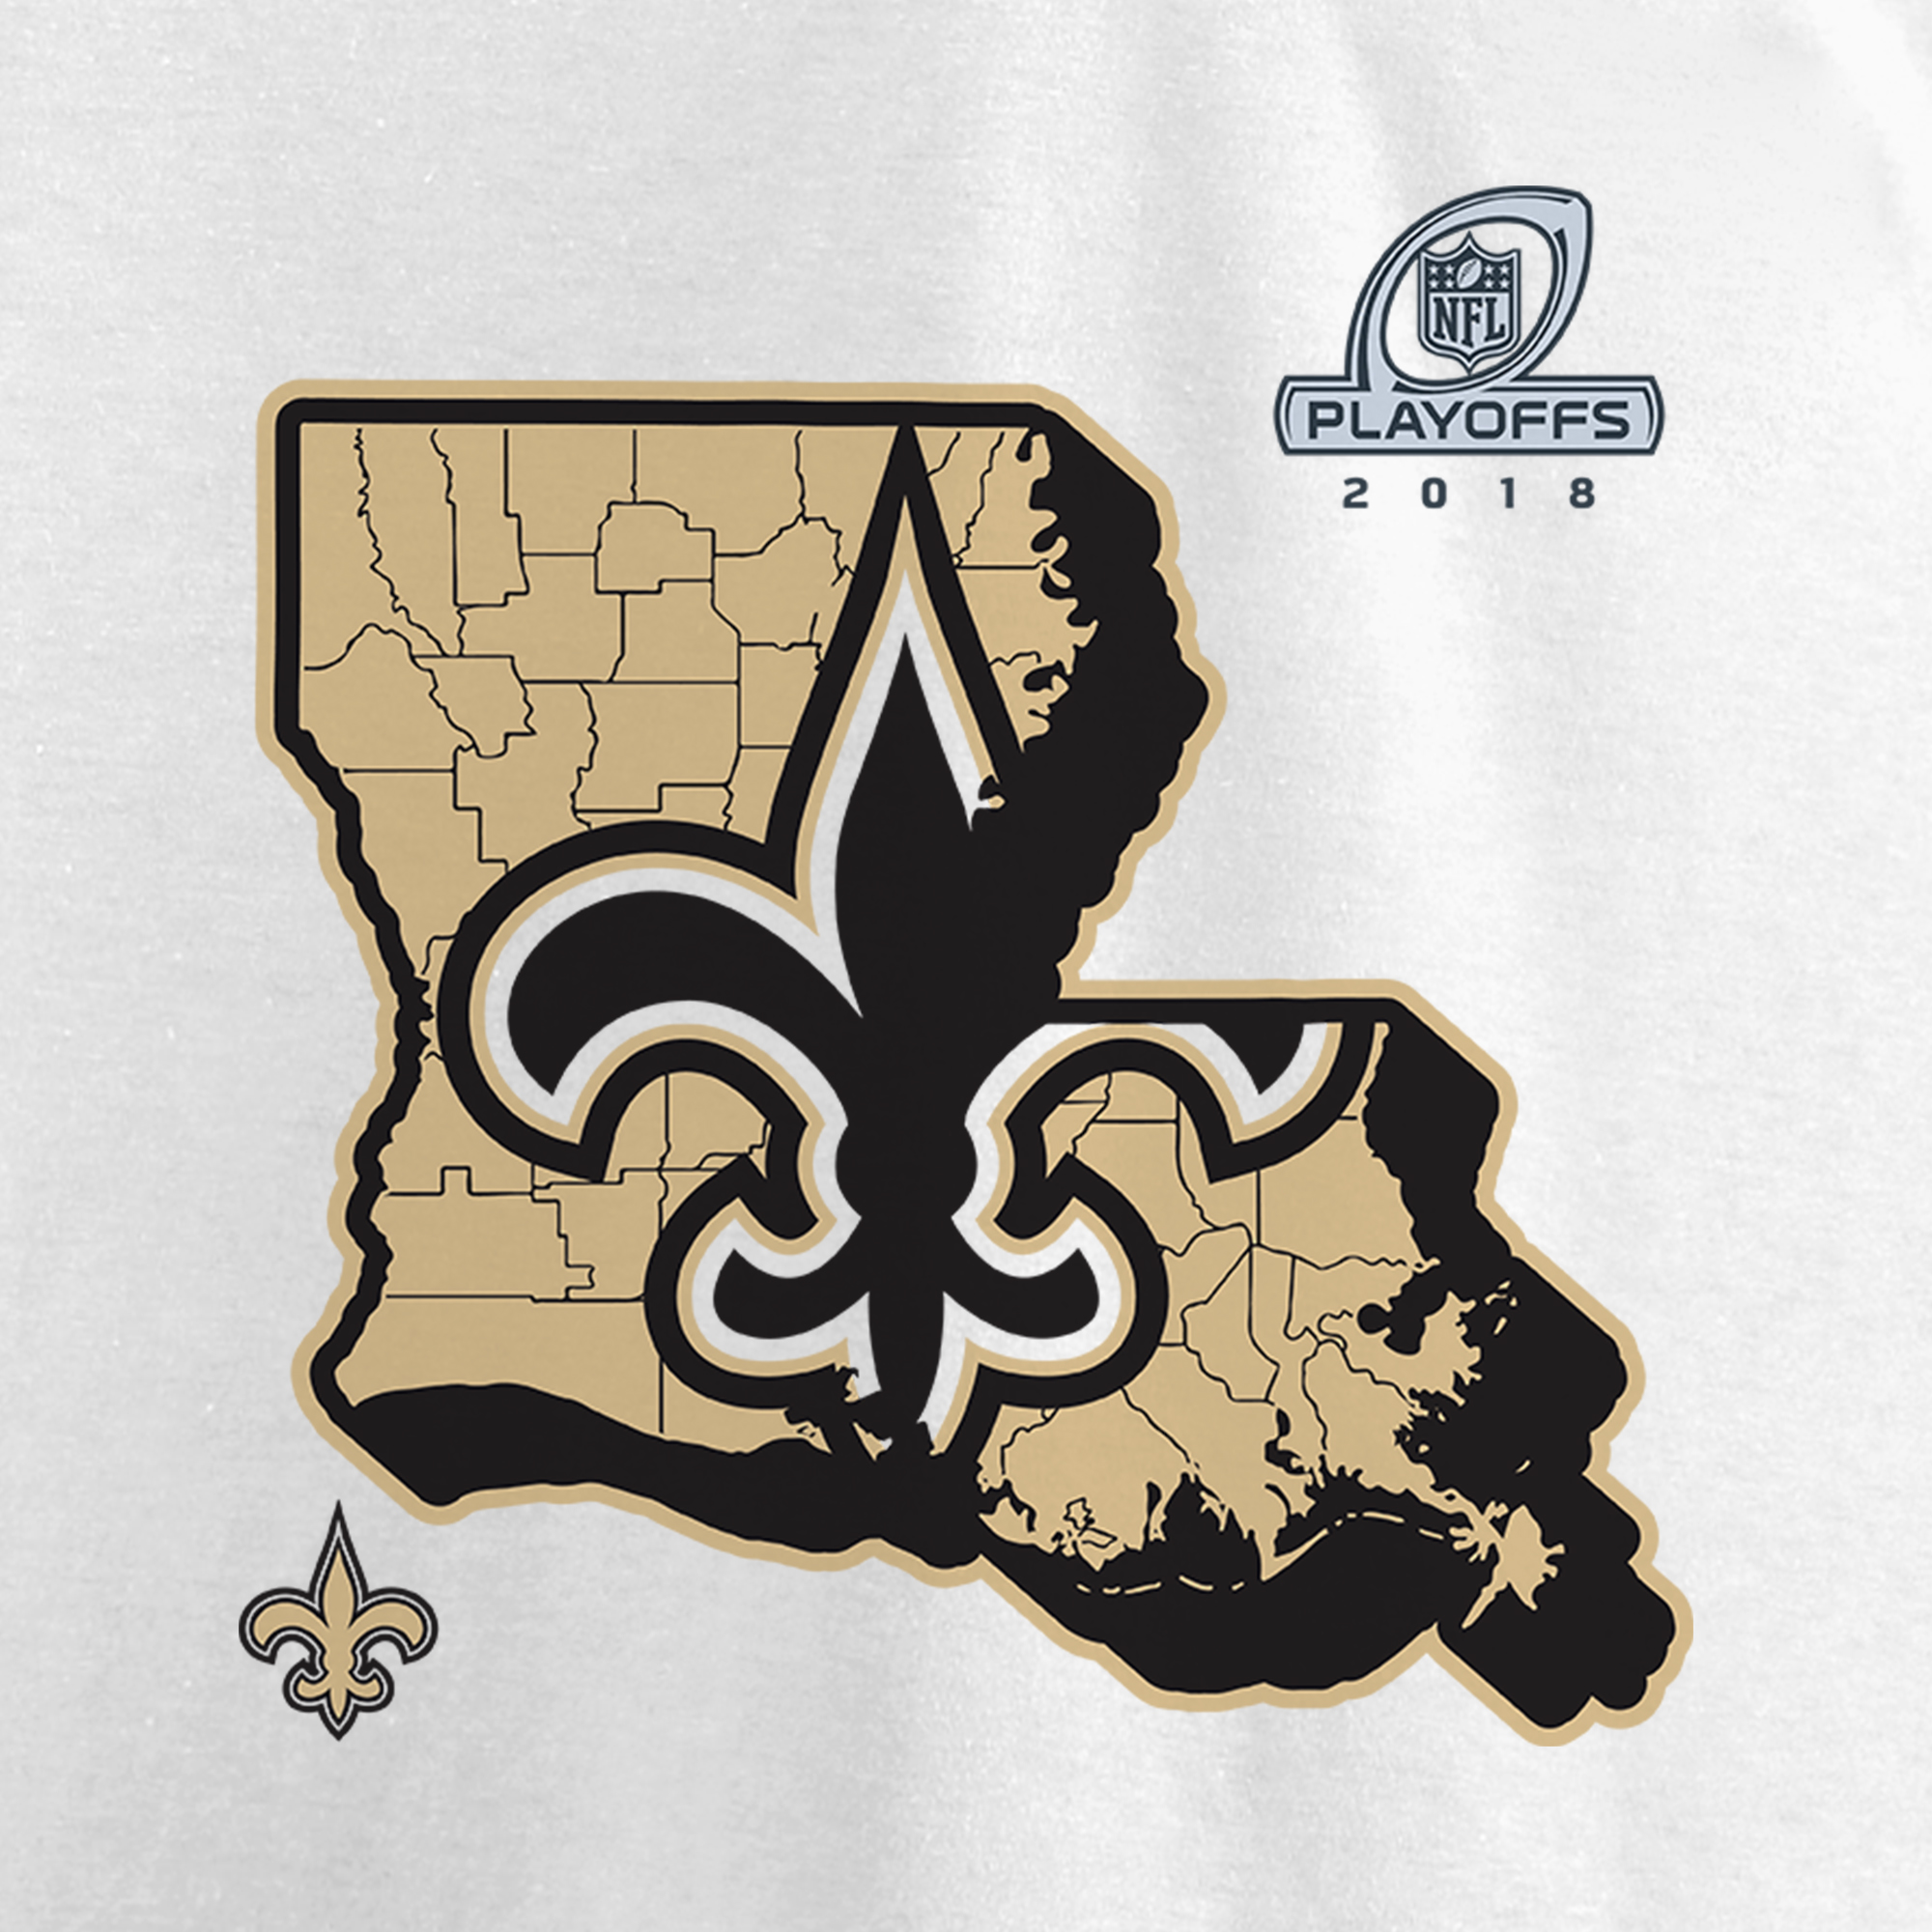 New Orleans Saints NFL Pro Line by Fanatics Branded Women s 2018 NFL  Playoffs Bound State V-Neck T-Shirt - White - Walmart.com a40d64734